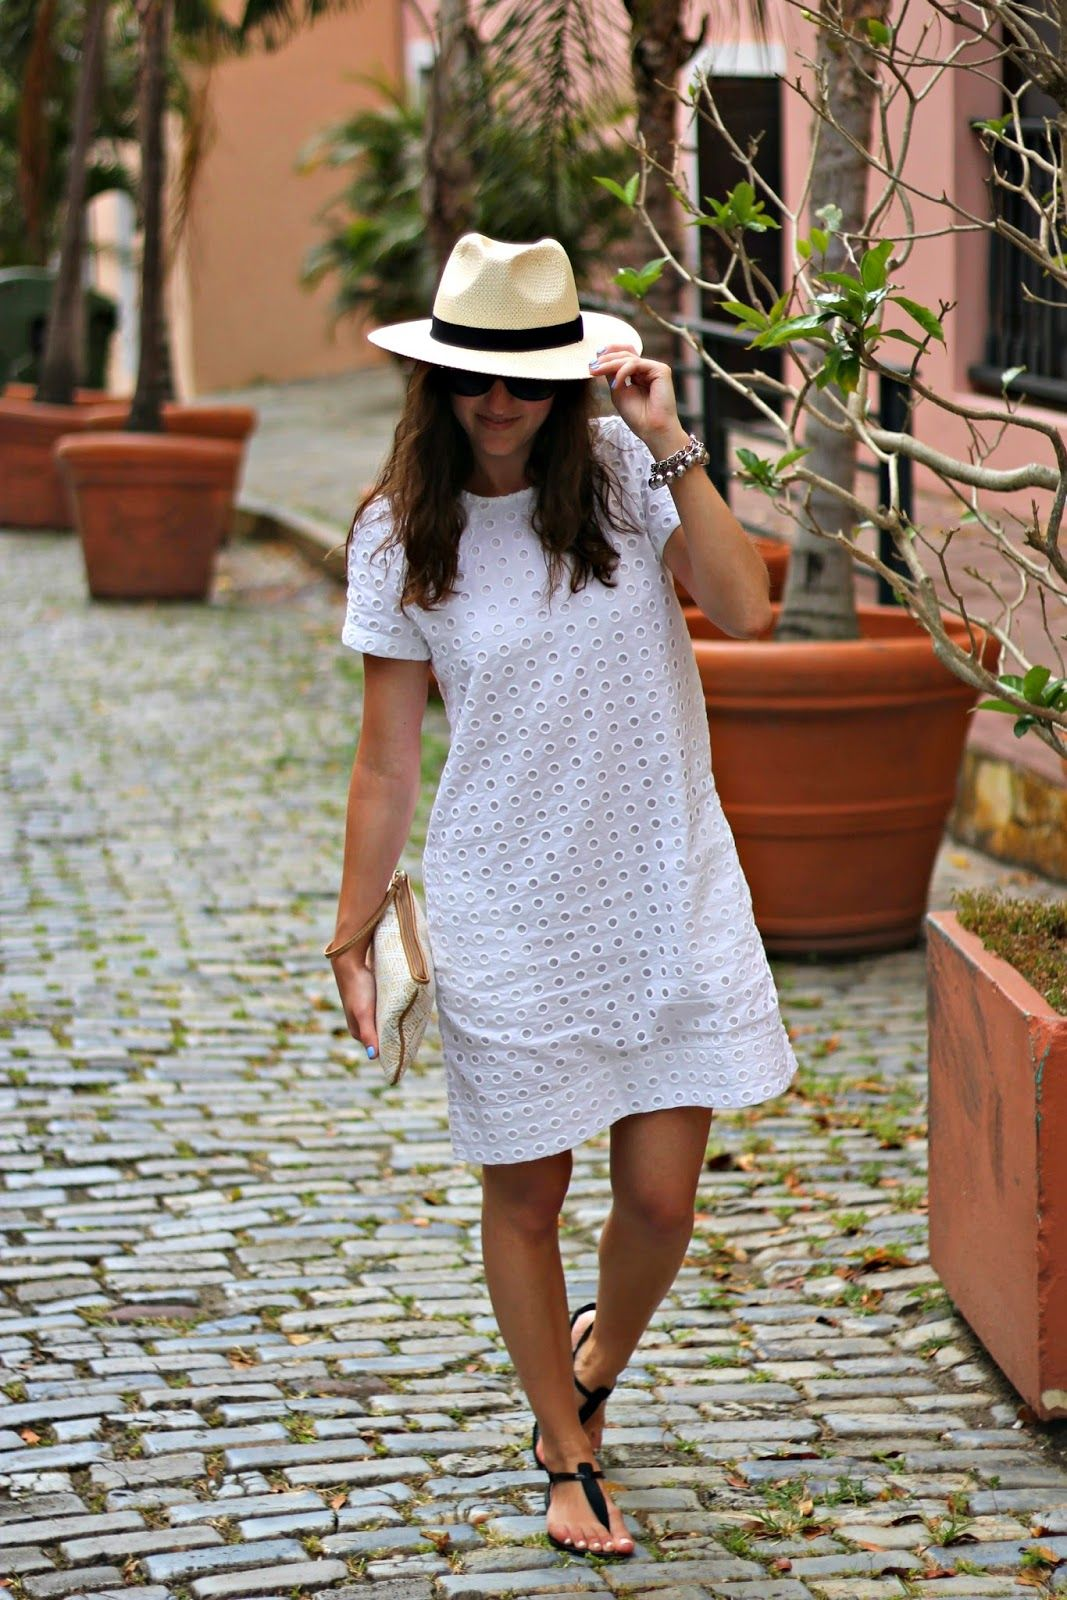 f6eb5c279 The Panama Hat (JCrew), the dress is a new spring staple (Gap ...